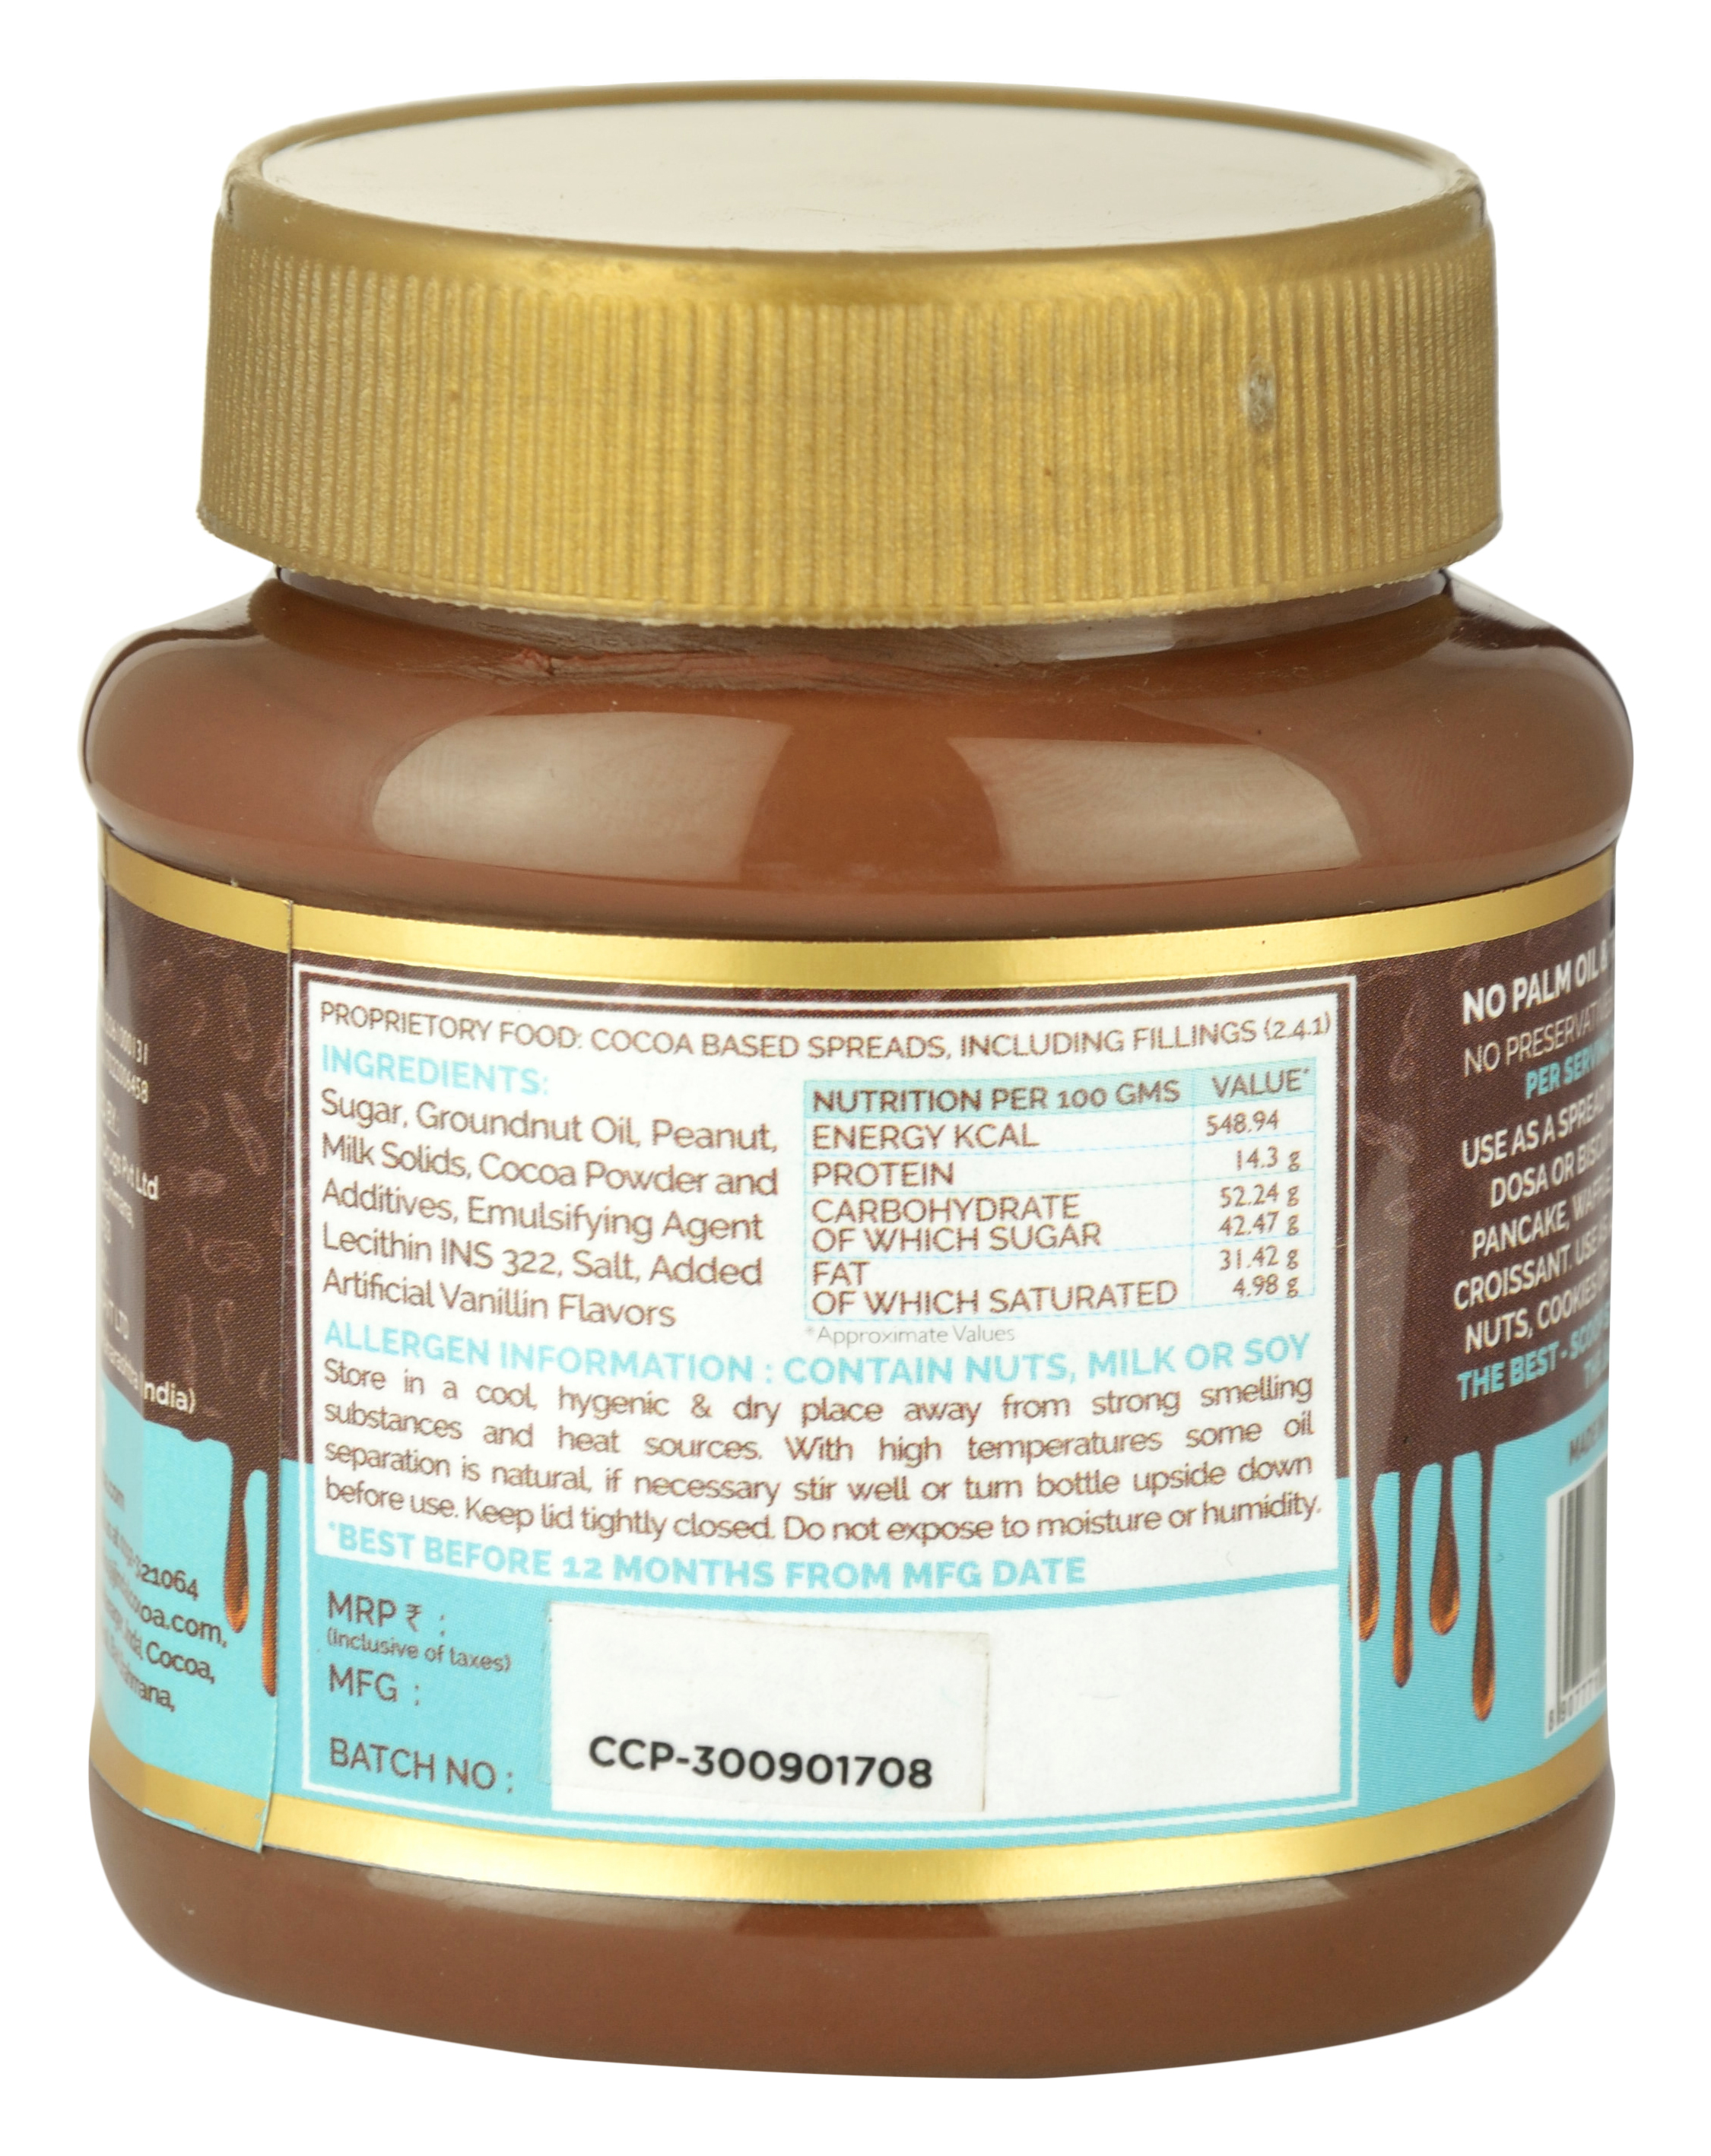 Chocolate-Spreads-Cocoa-Peanut-Cream160_2